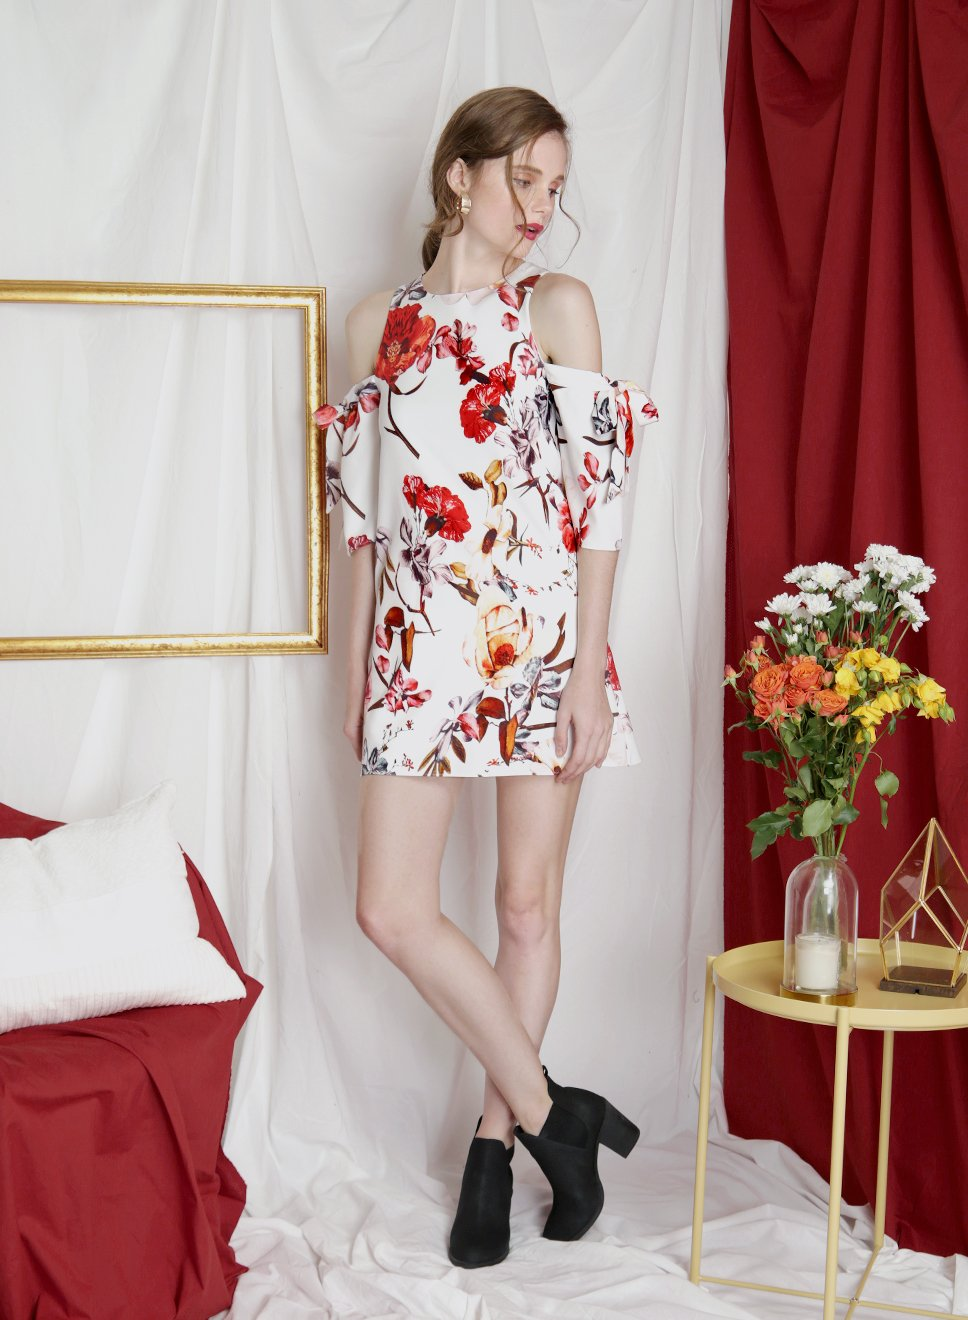 TRANSCEND Cold Shoulder Floral Dress (White) at $ 29.90 only sold at And Well Dressed Online Fashion Store Singapore